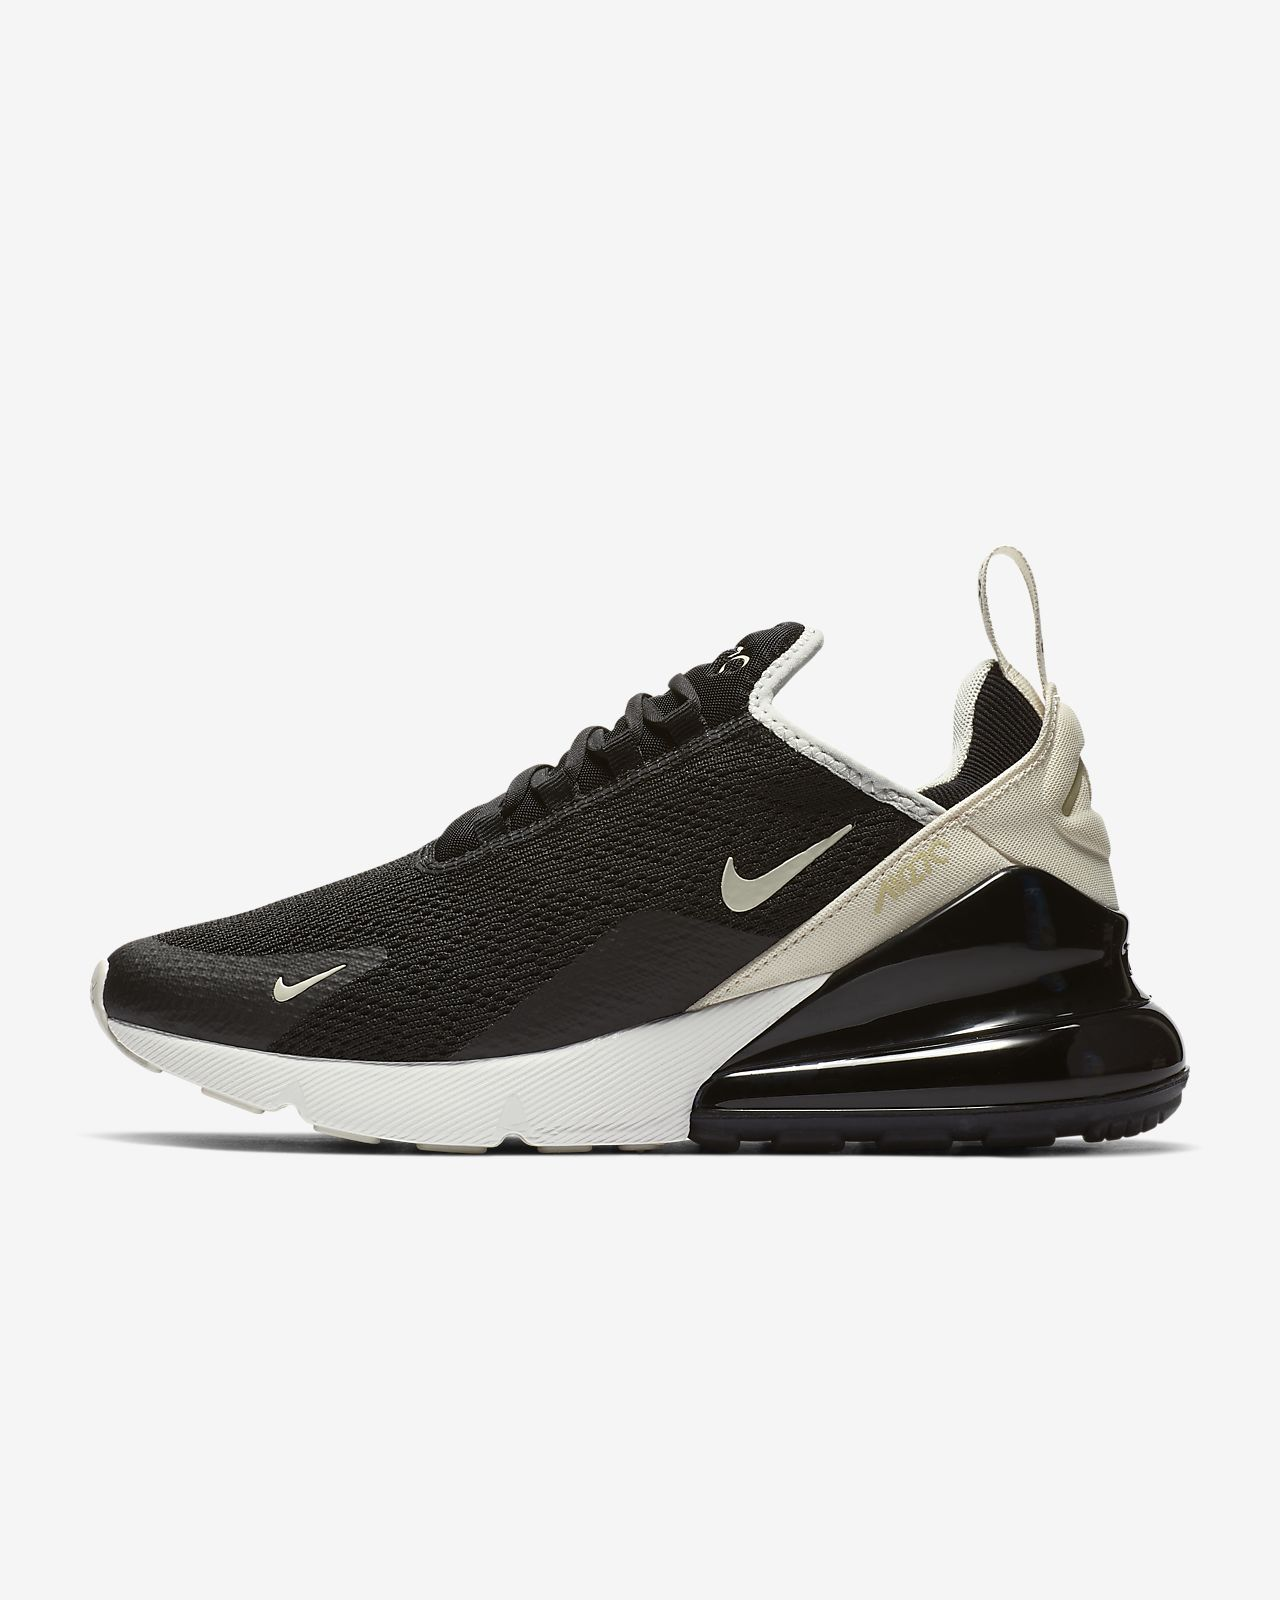 759f8657fb Nike Air Max 270 Women's Shoe. Nike.com CA